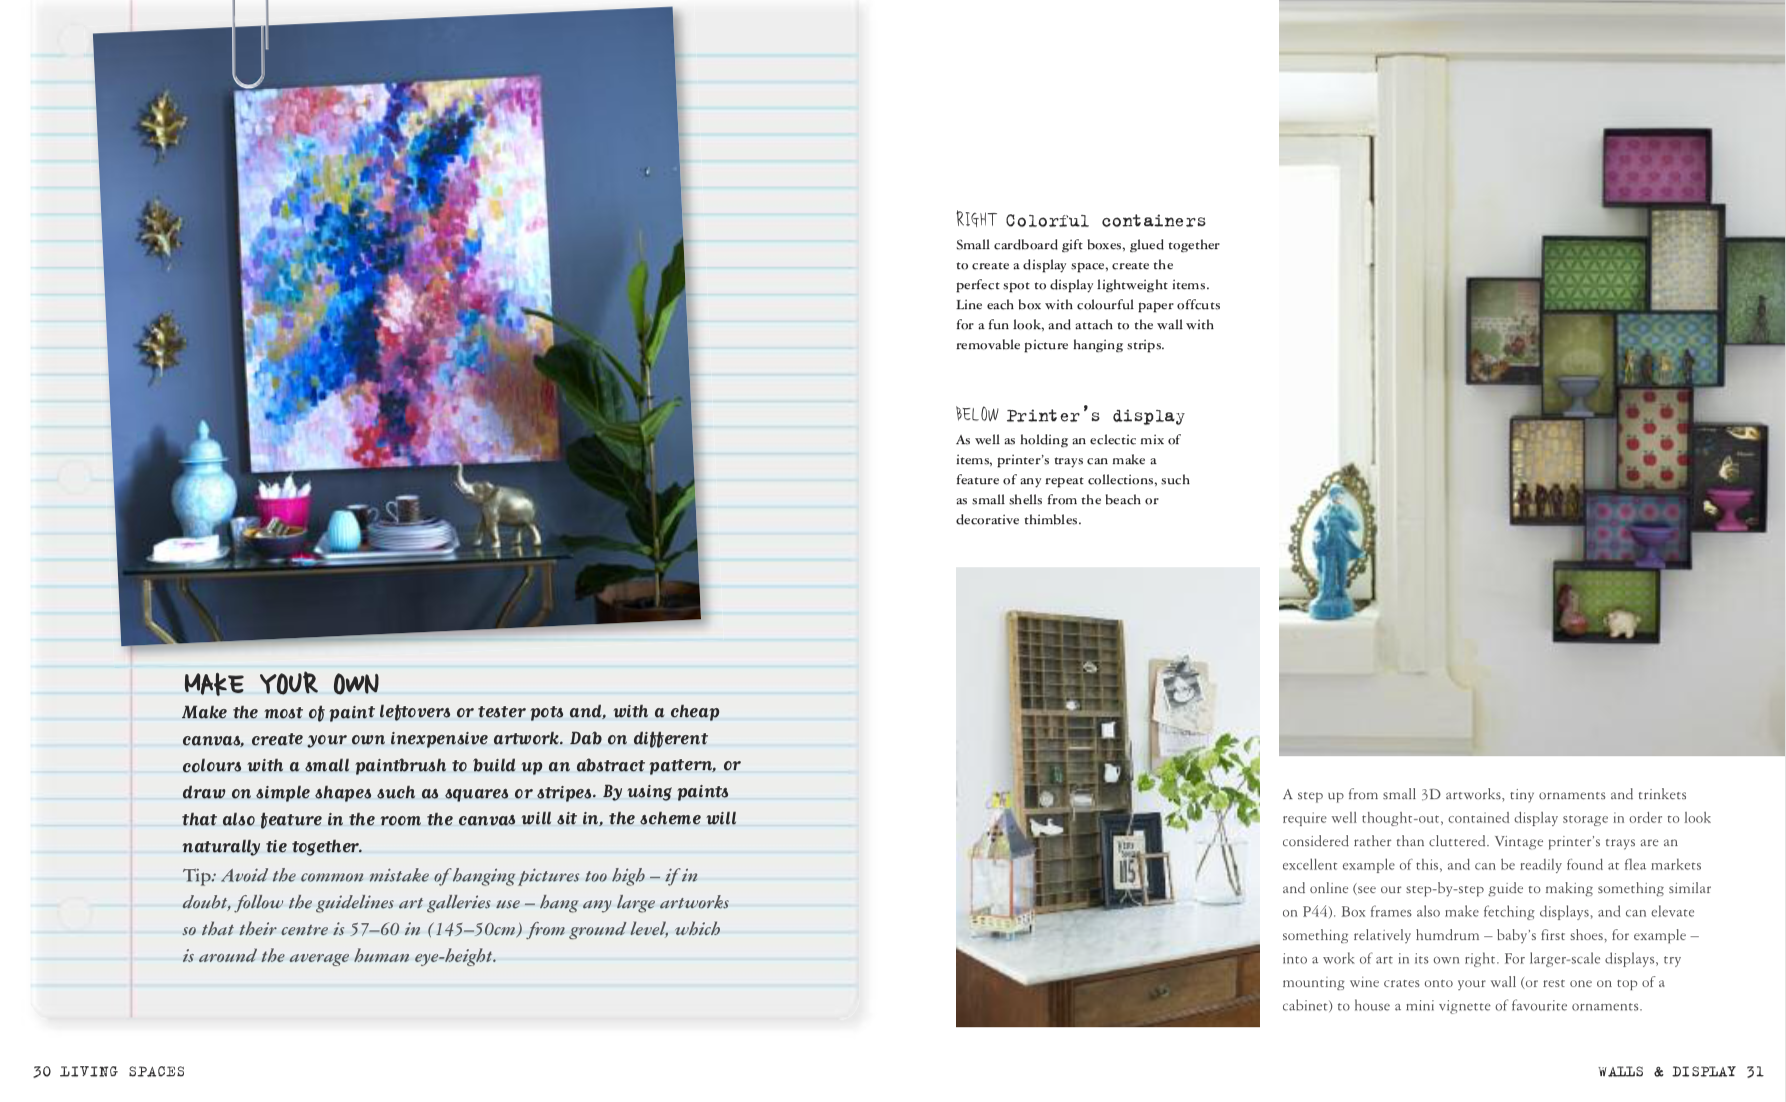 Insta Style for Your Living Space by Joanna Thornhill P30-31